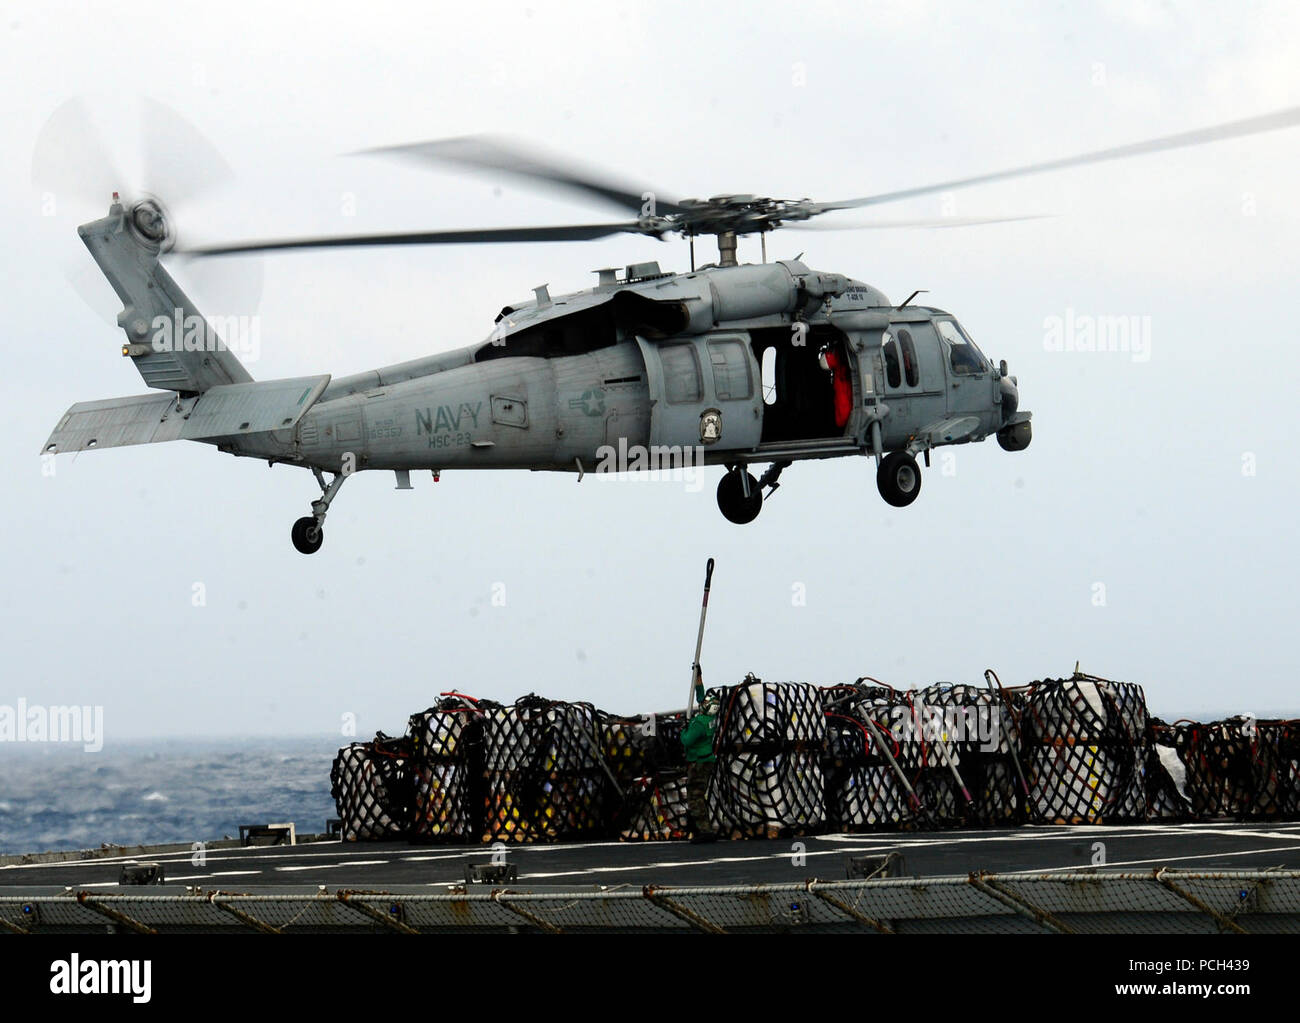 A U.S. Navy MH-60S Knighthawk helicopter transfers supplies from fast combat support ship USNS Bridge (T-AOE 10) to aircraft carrier USS Carl Vinson (CVN 70) during a vertical replenishment Jan. 2, 2012, in the Pacific Ocean. Vinson and Carrier Air Wing (CVW) 17 were under way on a western Pacific deployment. - Stock Image